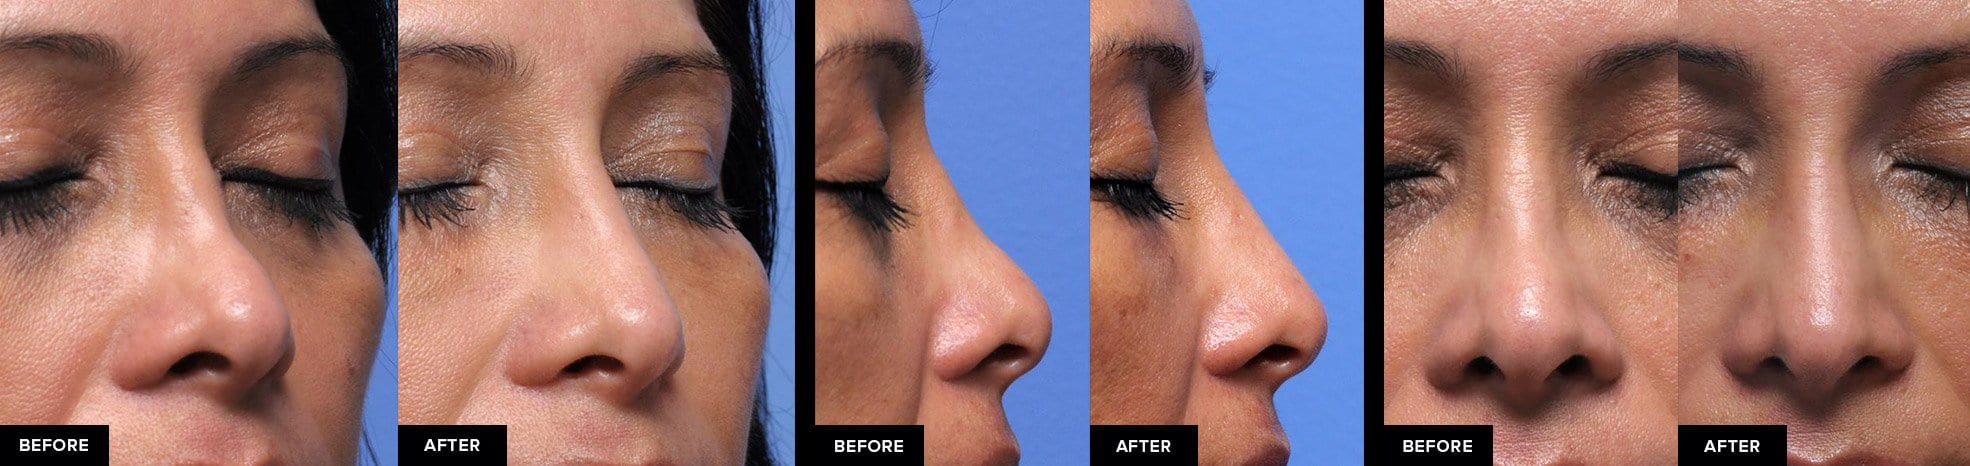 Nonsurgical rhinoplasty to add volume to the bridge